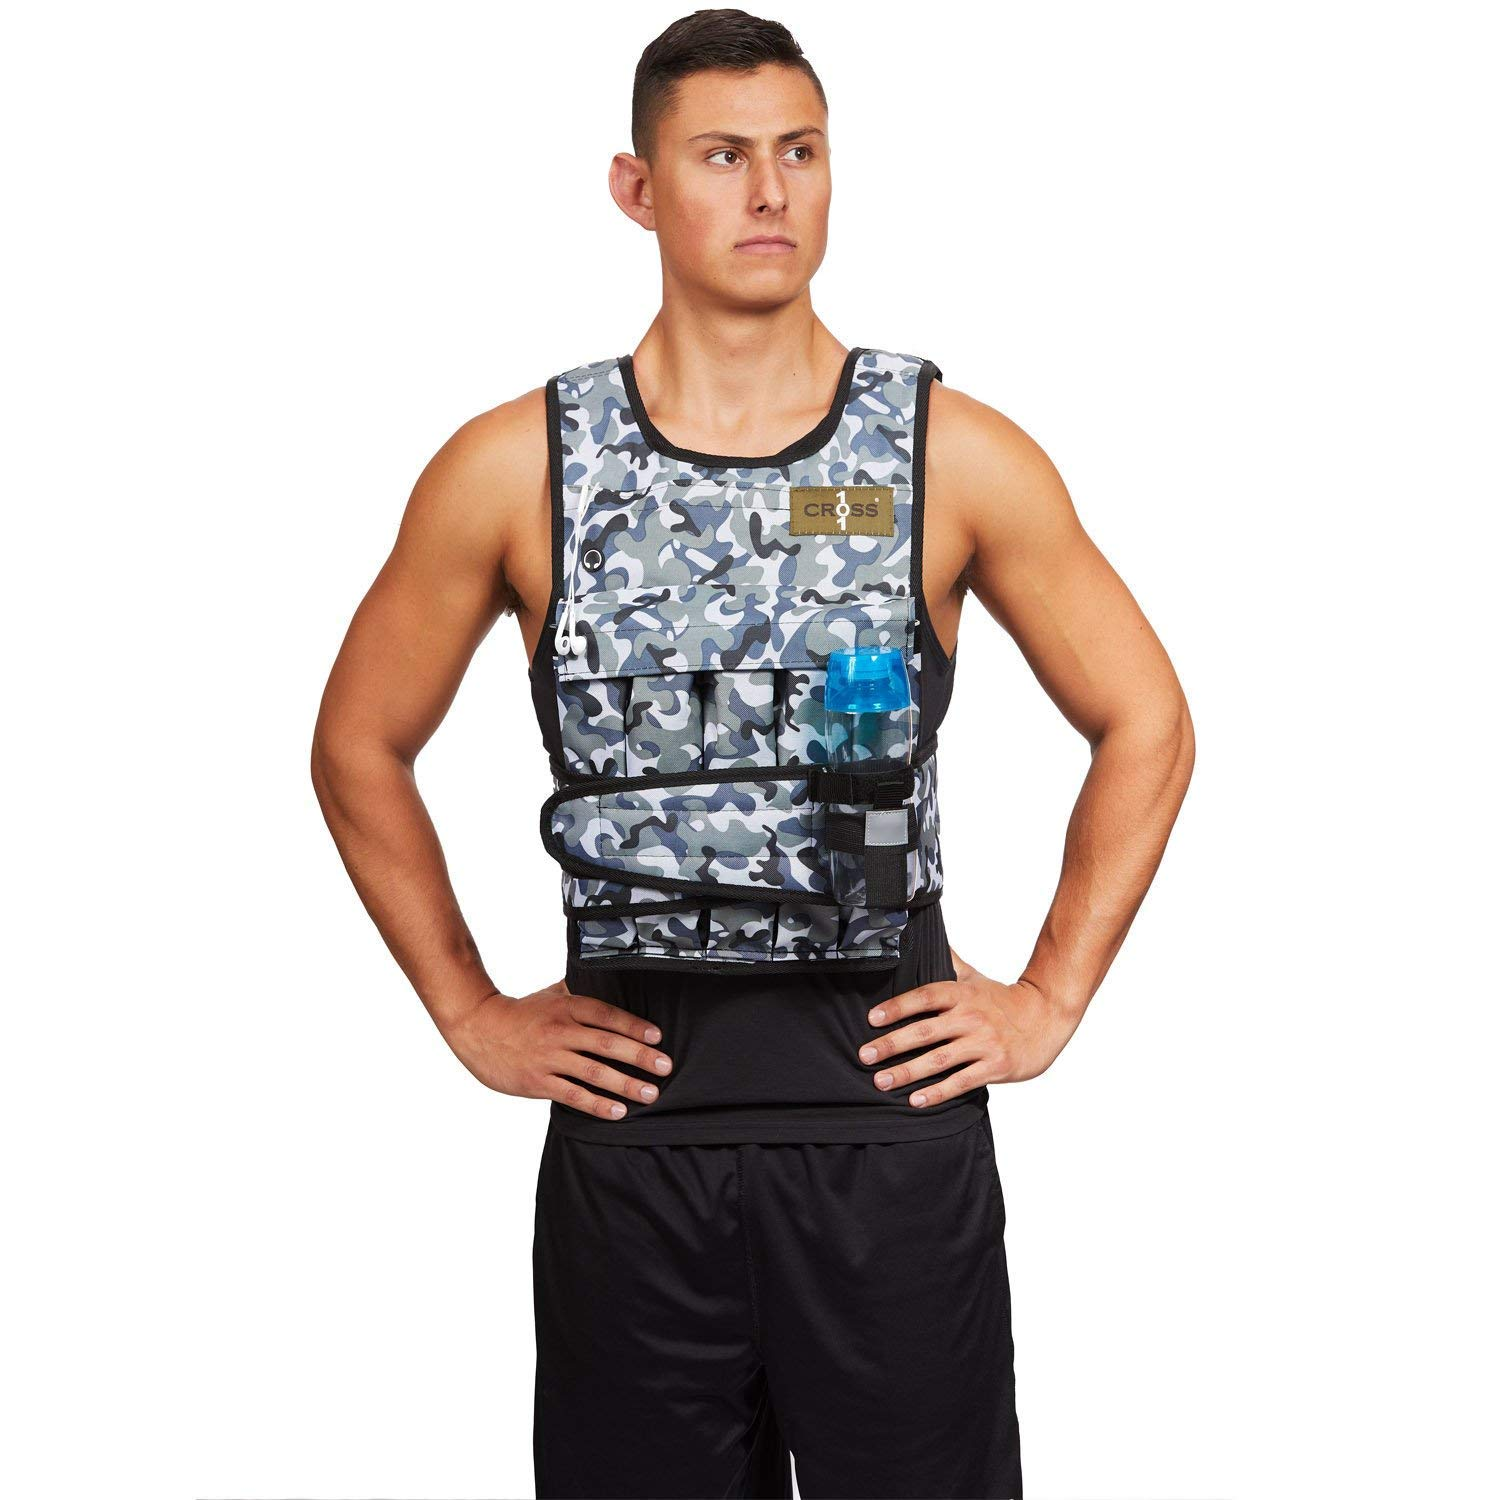 CROSS101 Adjustable Camouflage Weighted Vest 12LBS - 140LBS (Arctic - 40LBS)